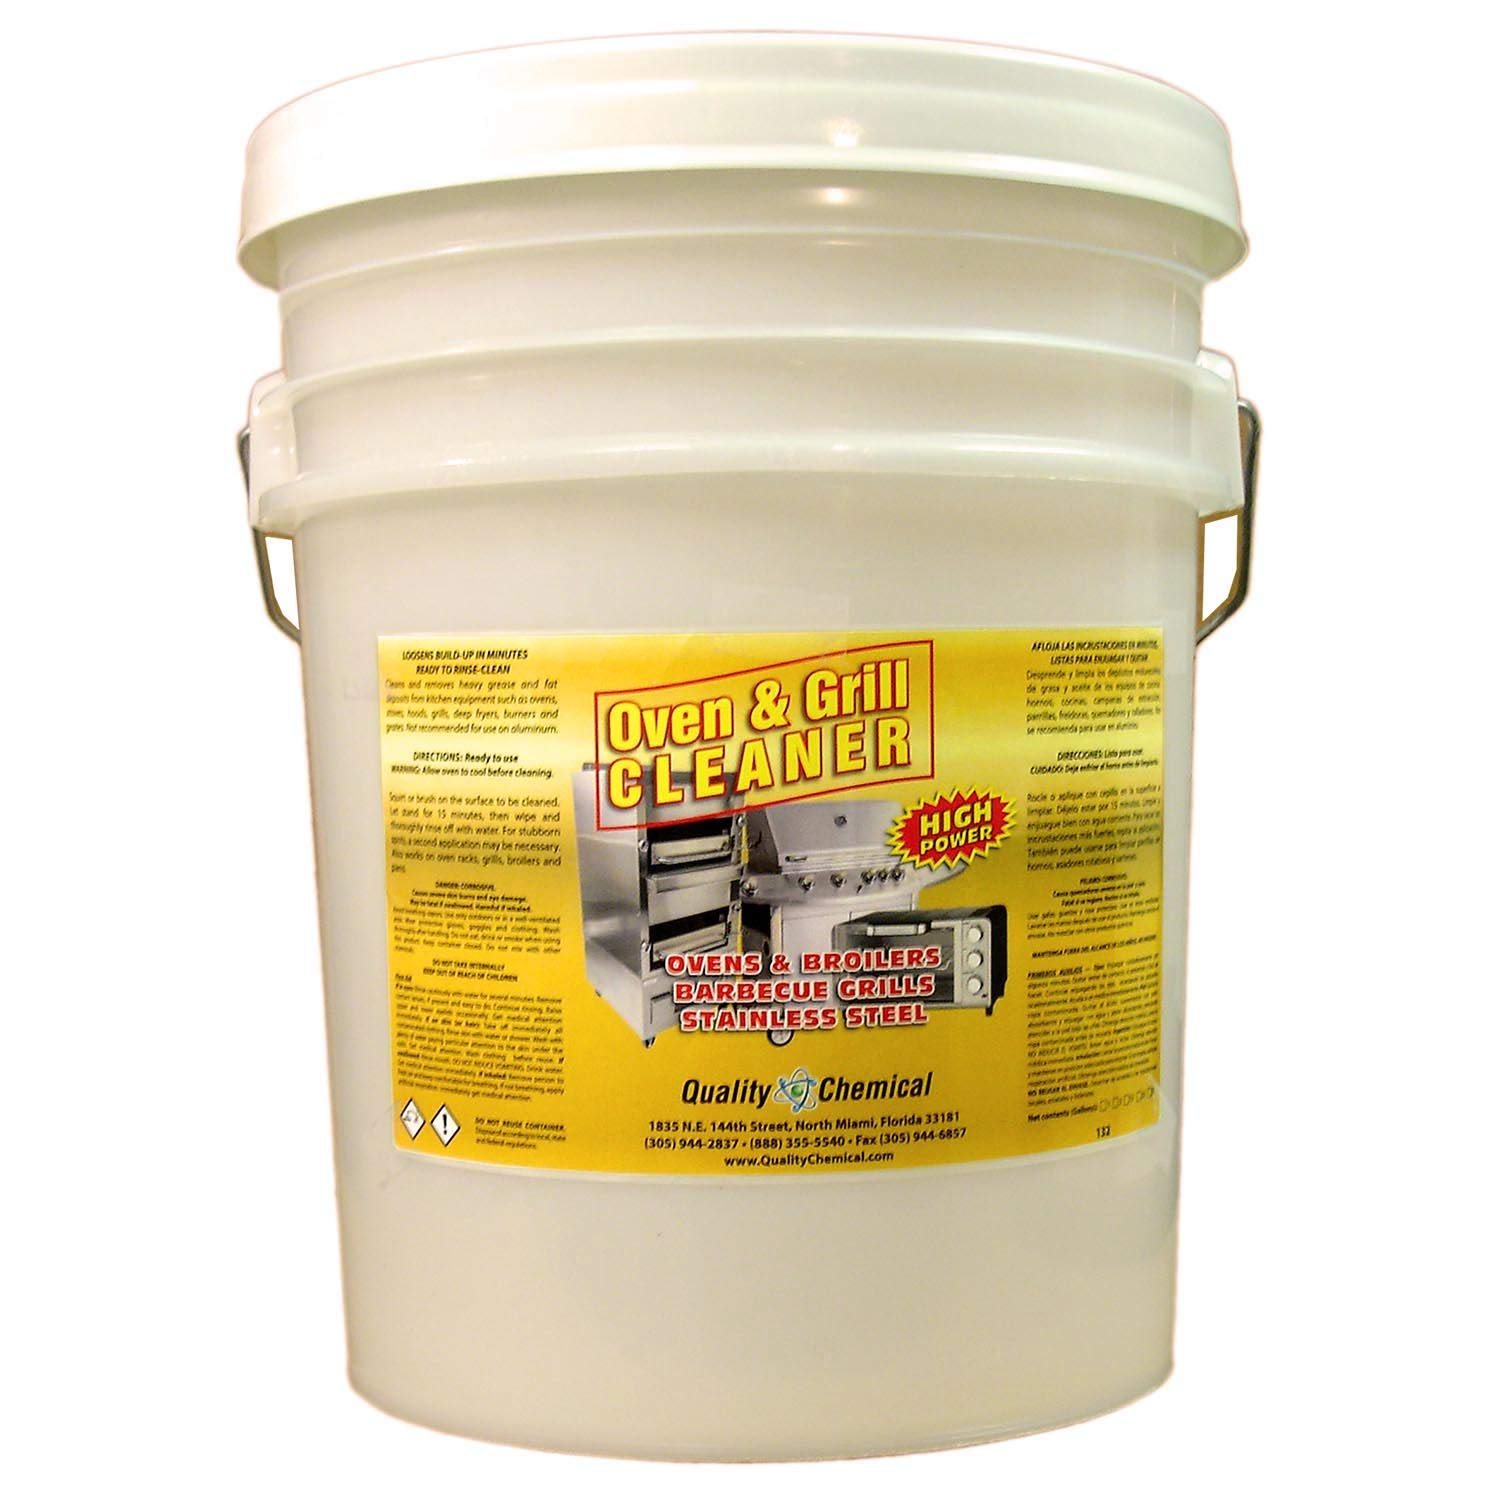 Quality Chemical Oven & Grill Cleaner Heavy-Duty. High Power! Nothing Stronger.-5 Gallon Pail by Quality Chemical